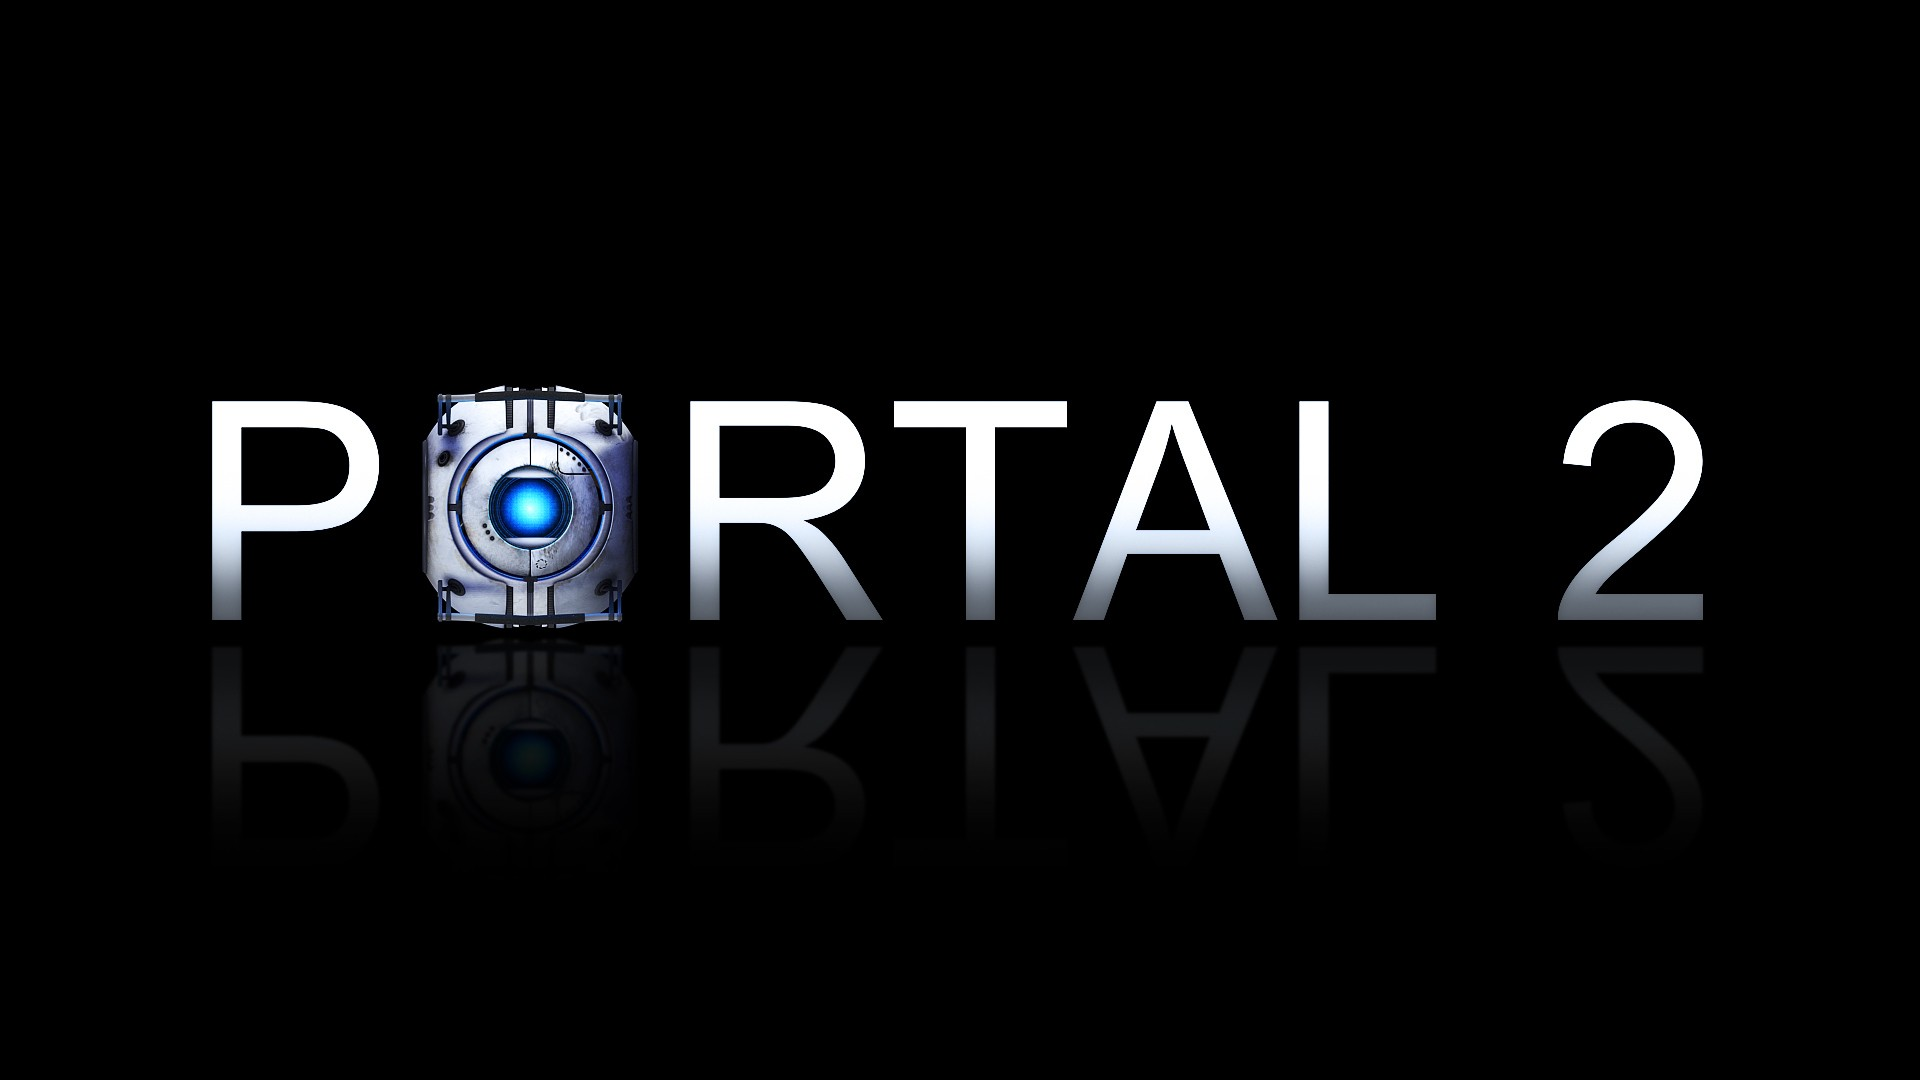 Portal 2 Wallpapers Pictures Images